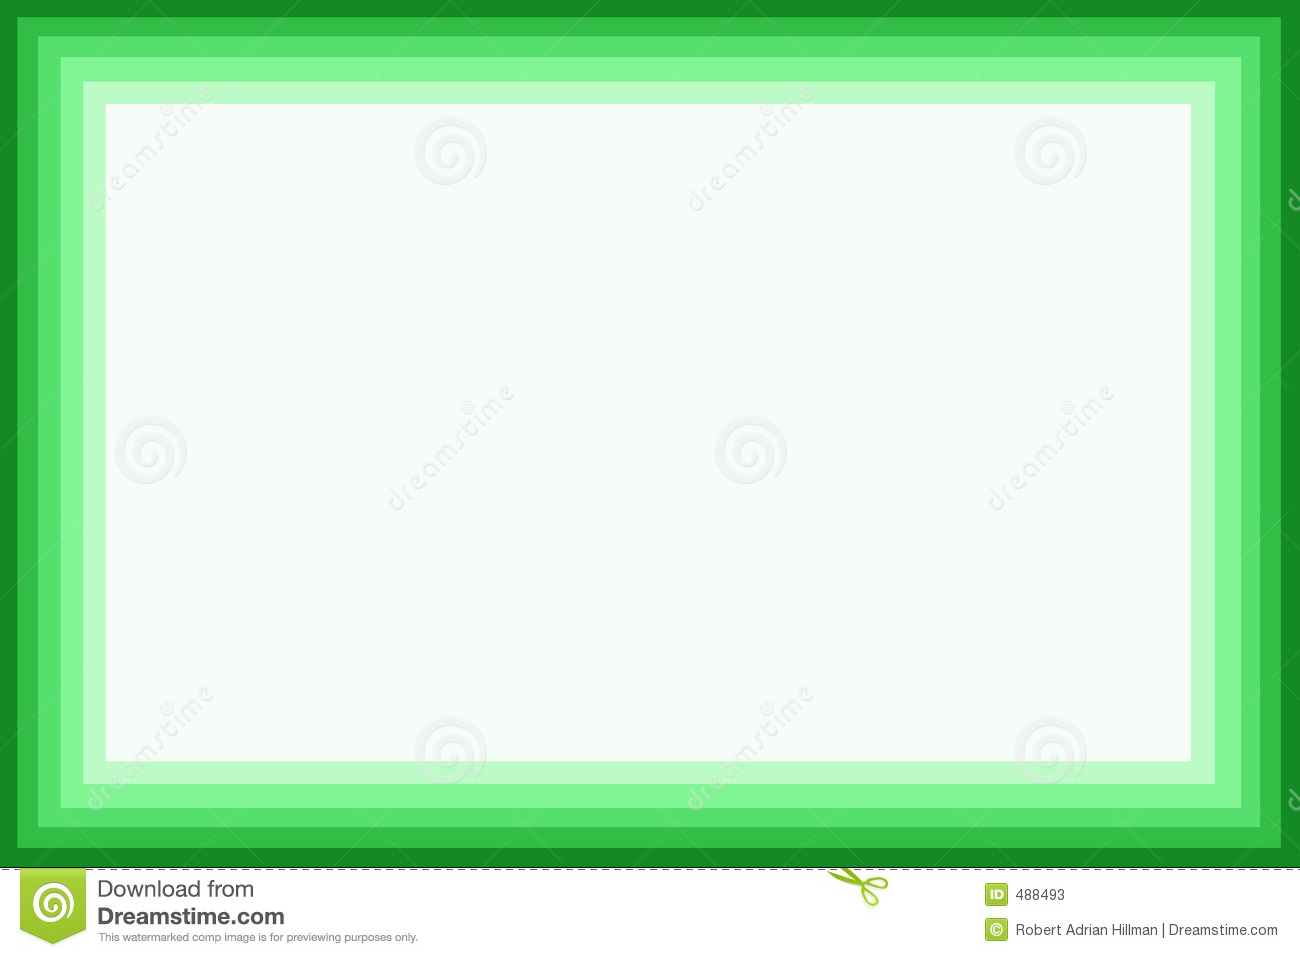 Green Border Stock Photos - Image: 488493